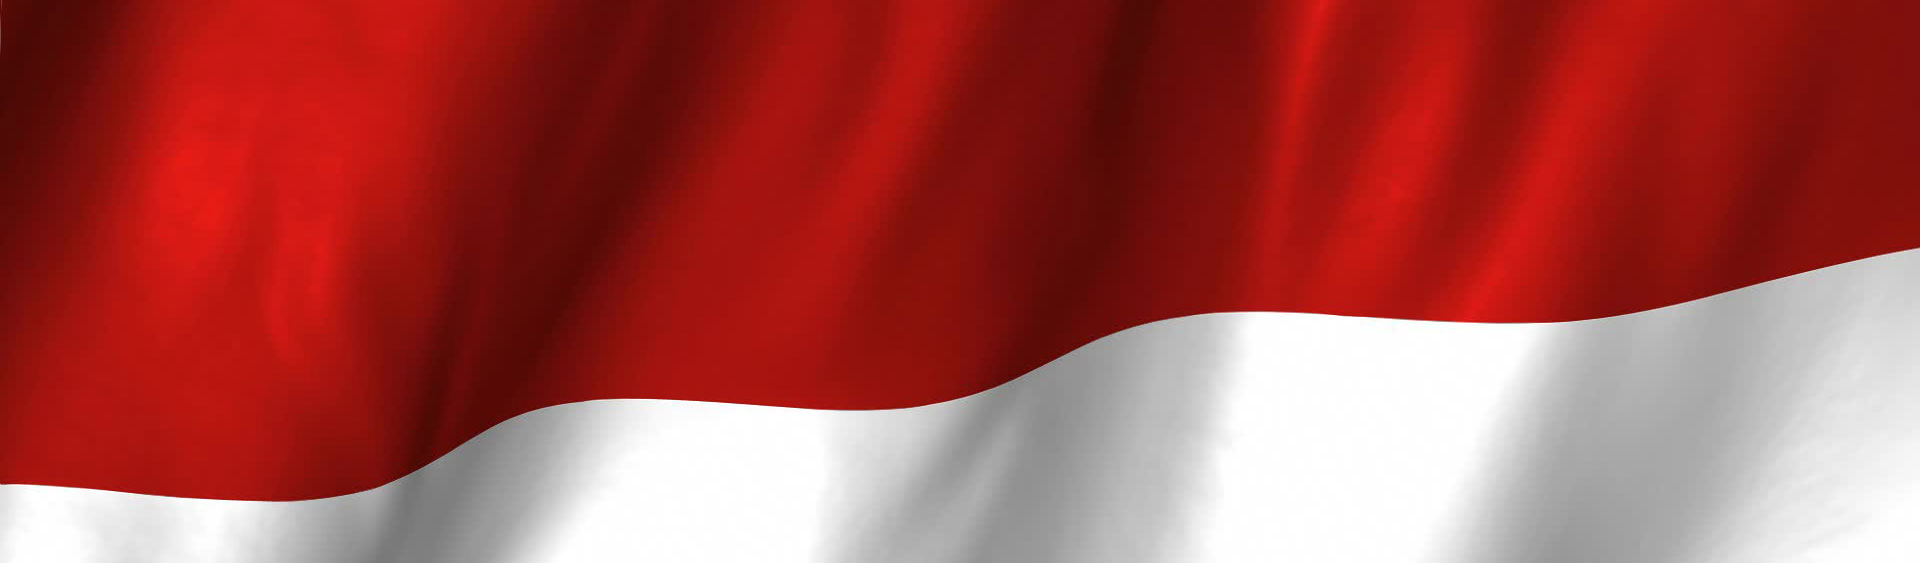 ARAB INDONESIA